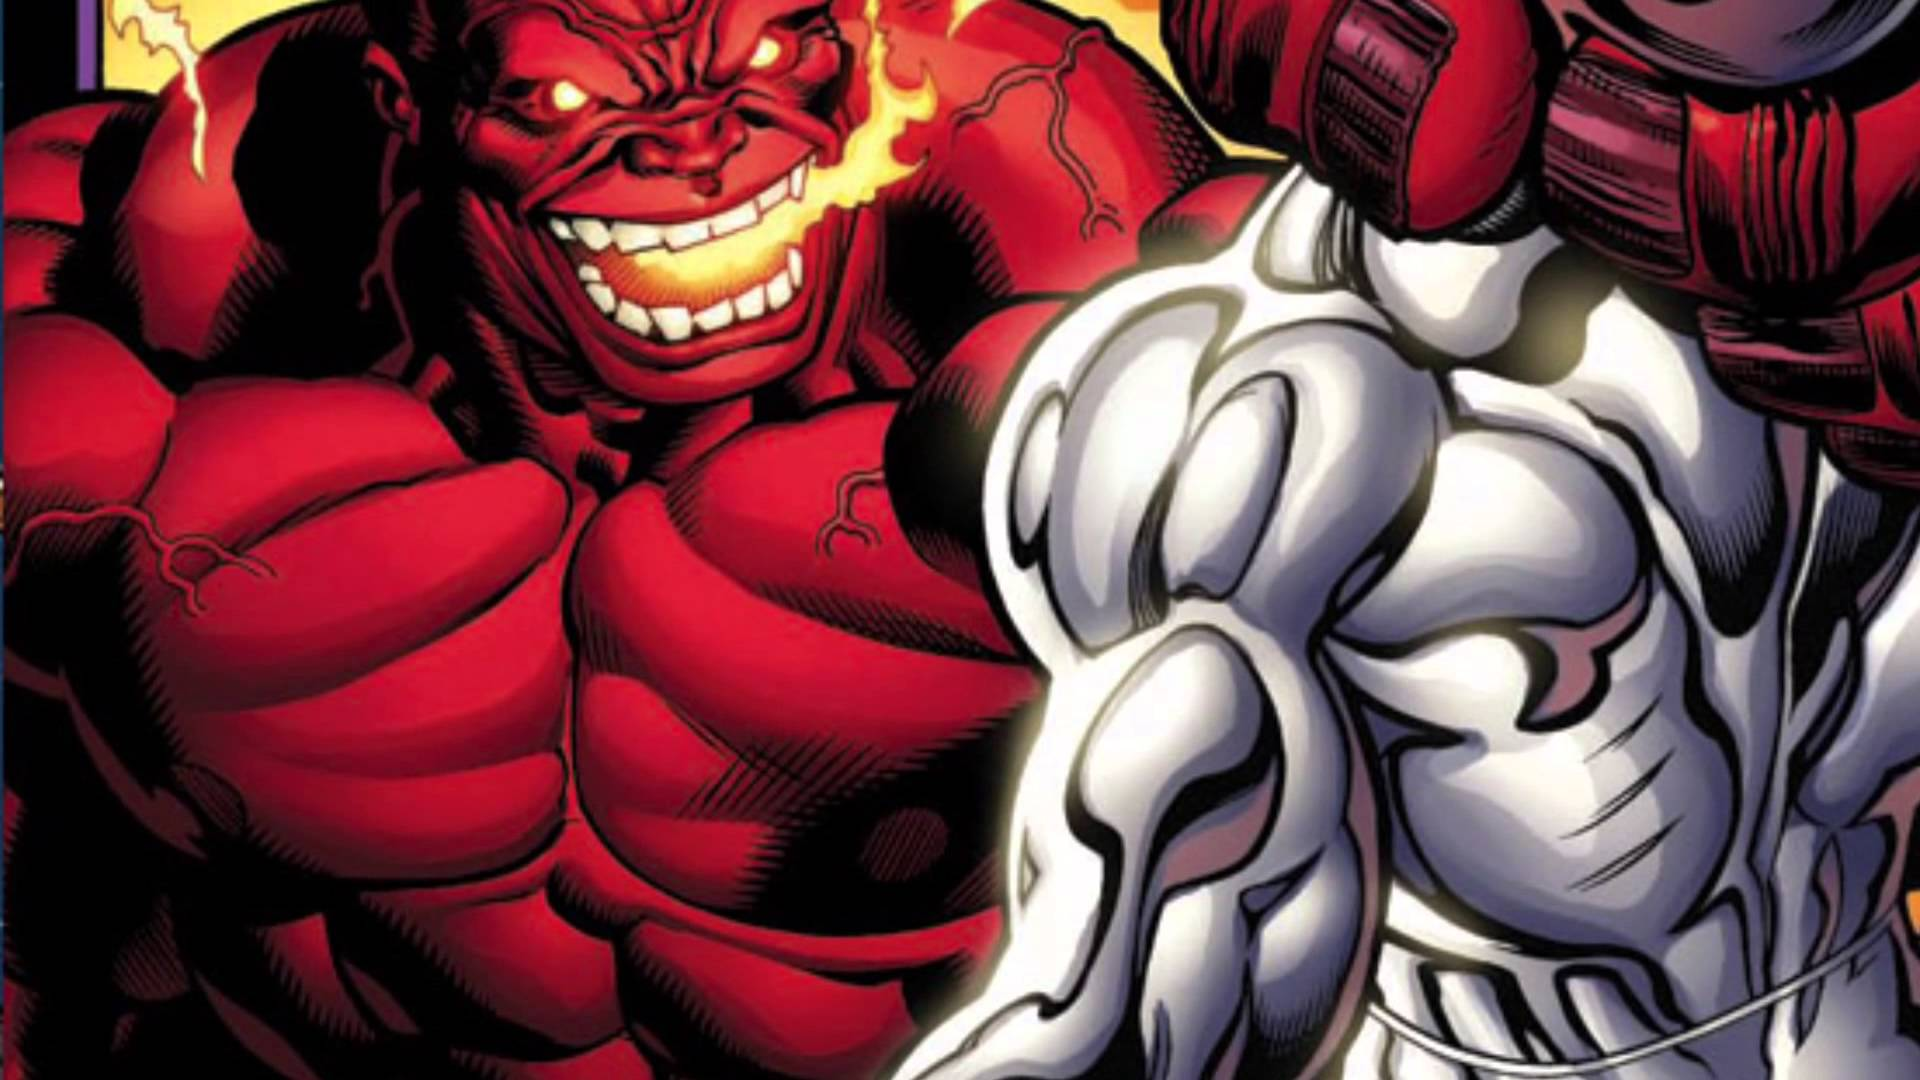 1920x1080 Red Hulk vs Silver Surfer - YouTube